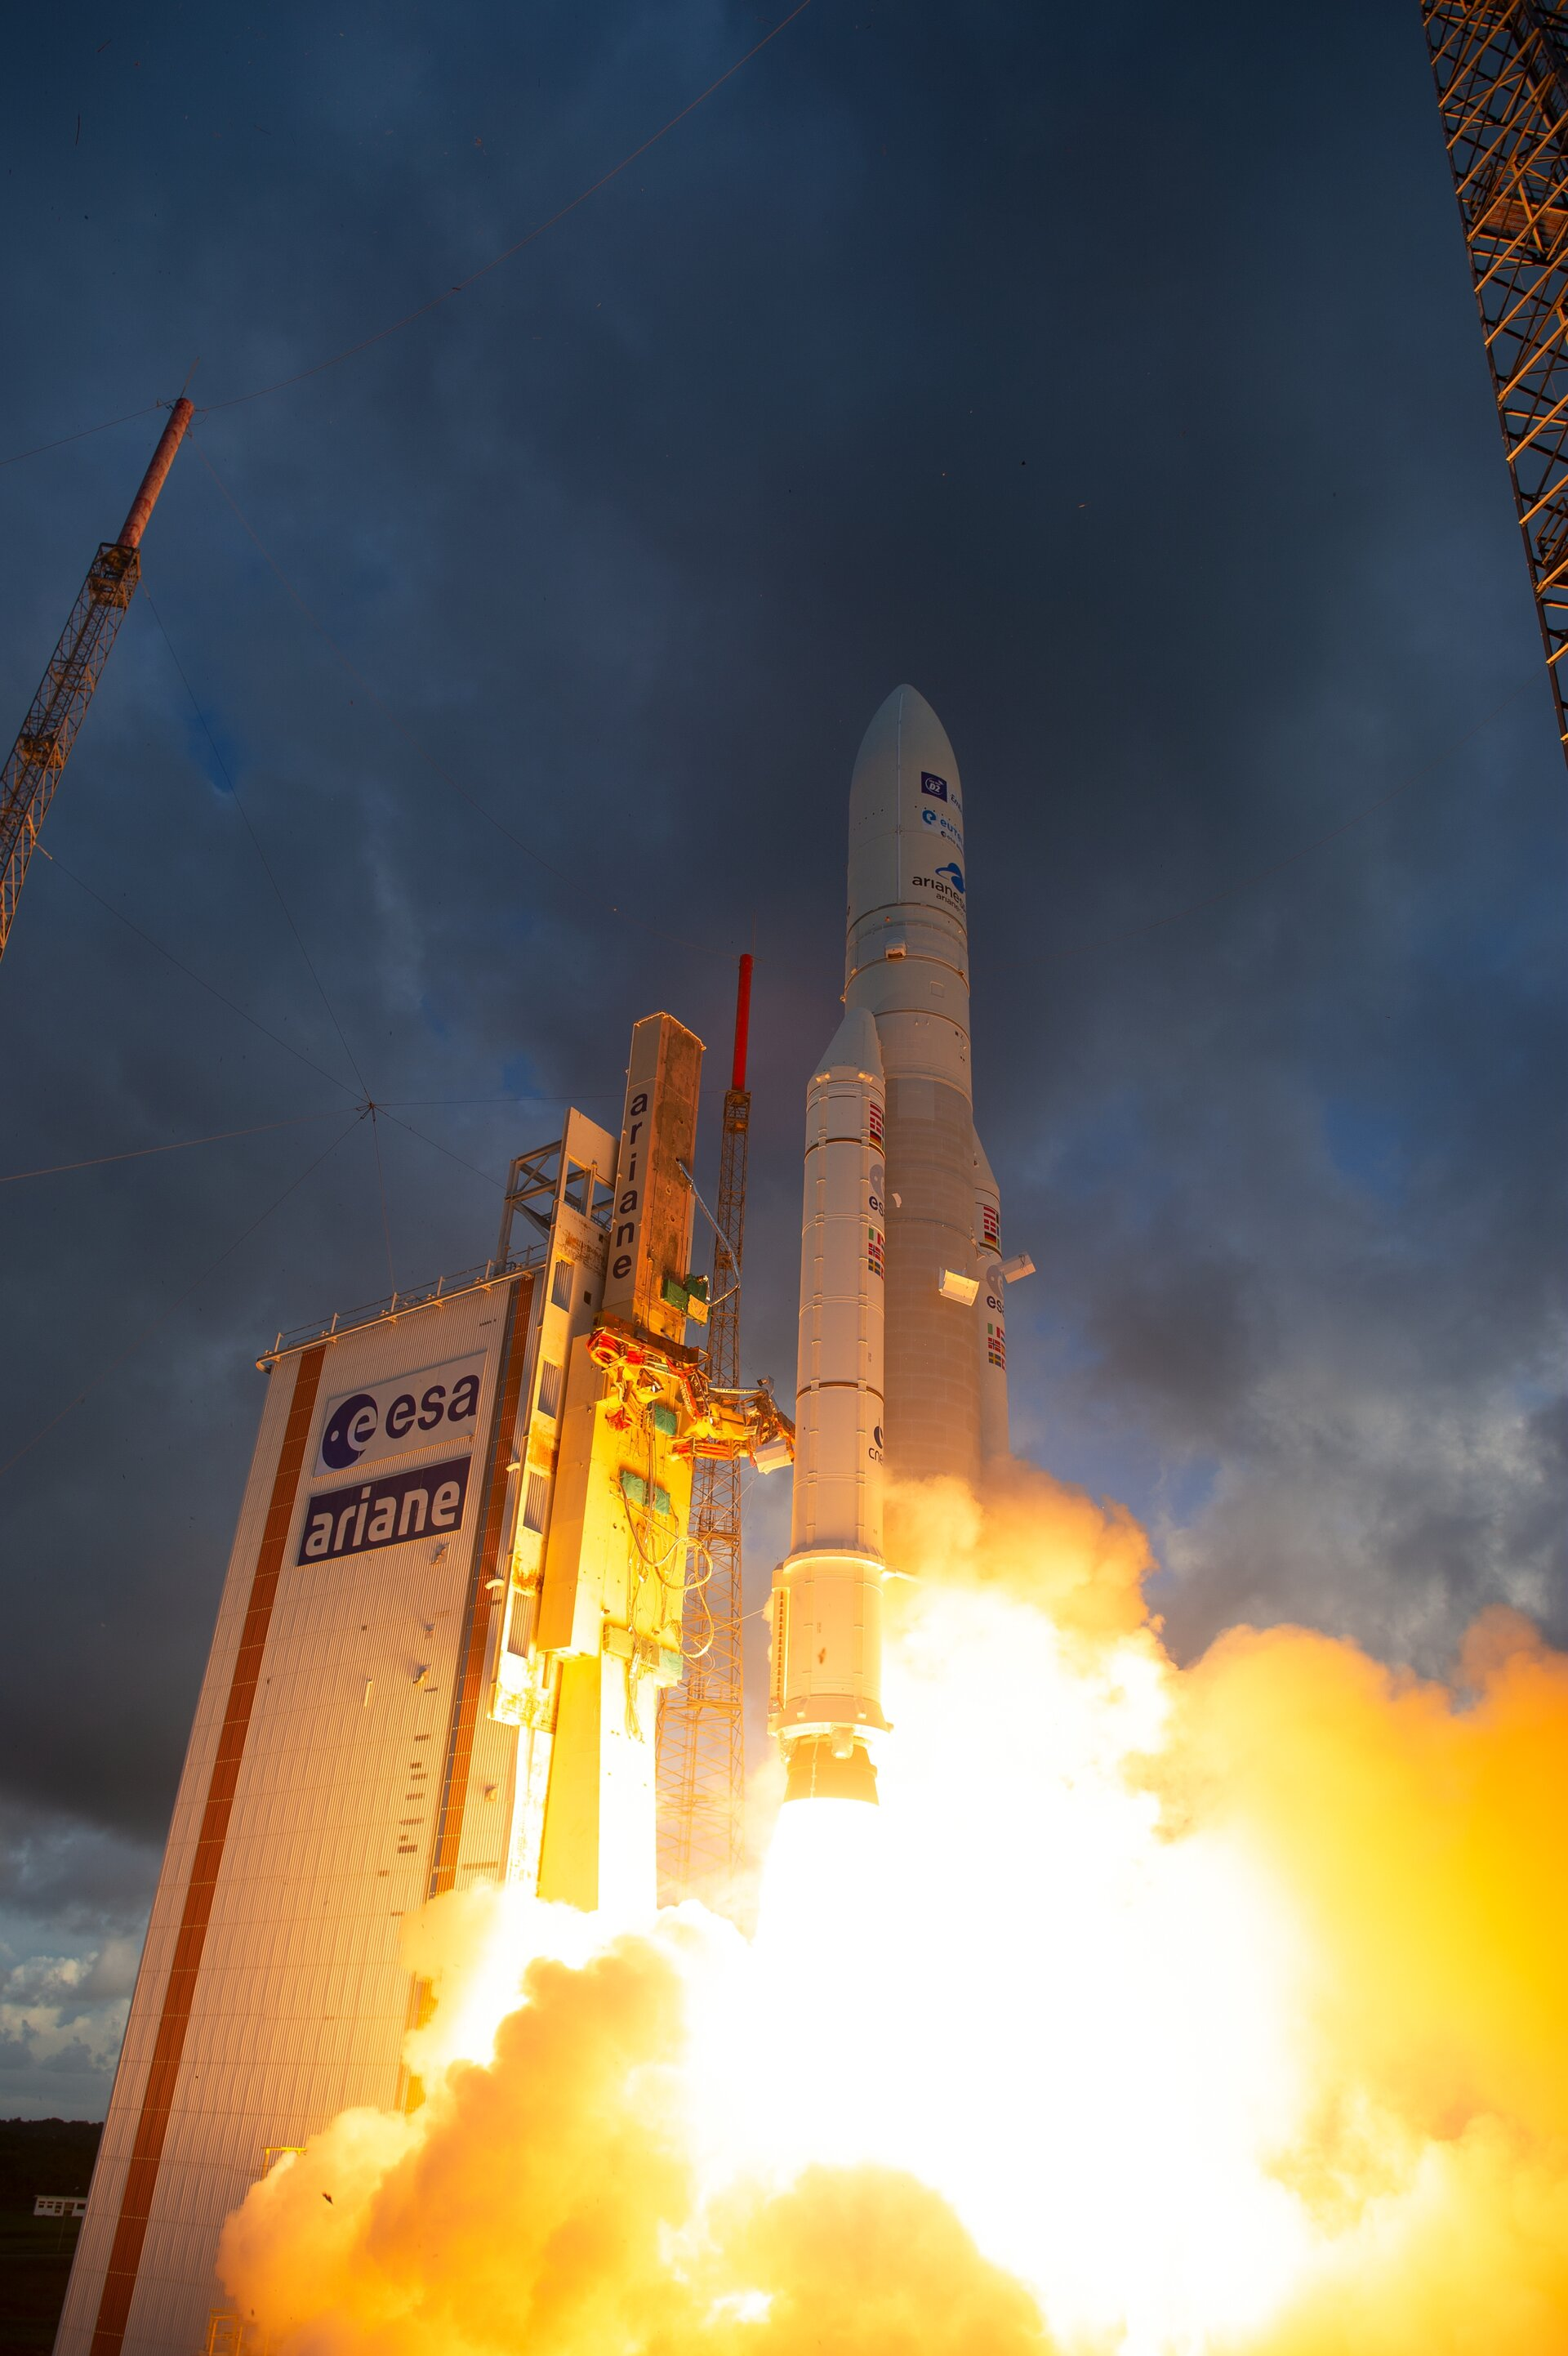 Reprogrammable satellite launched